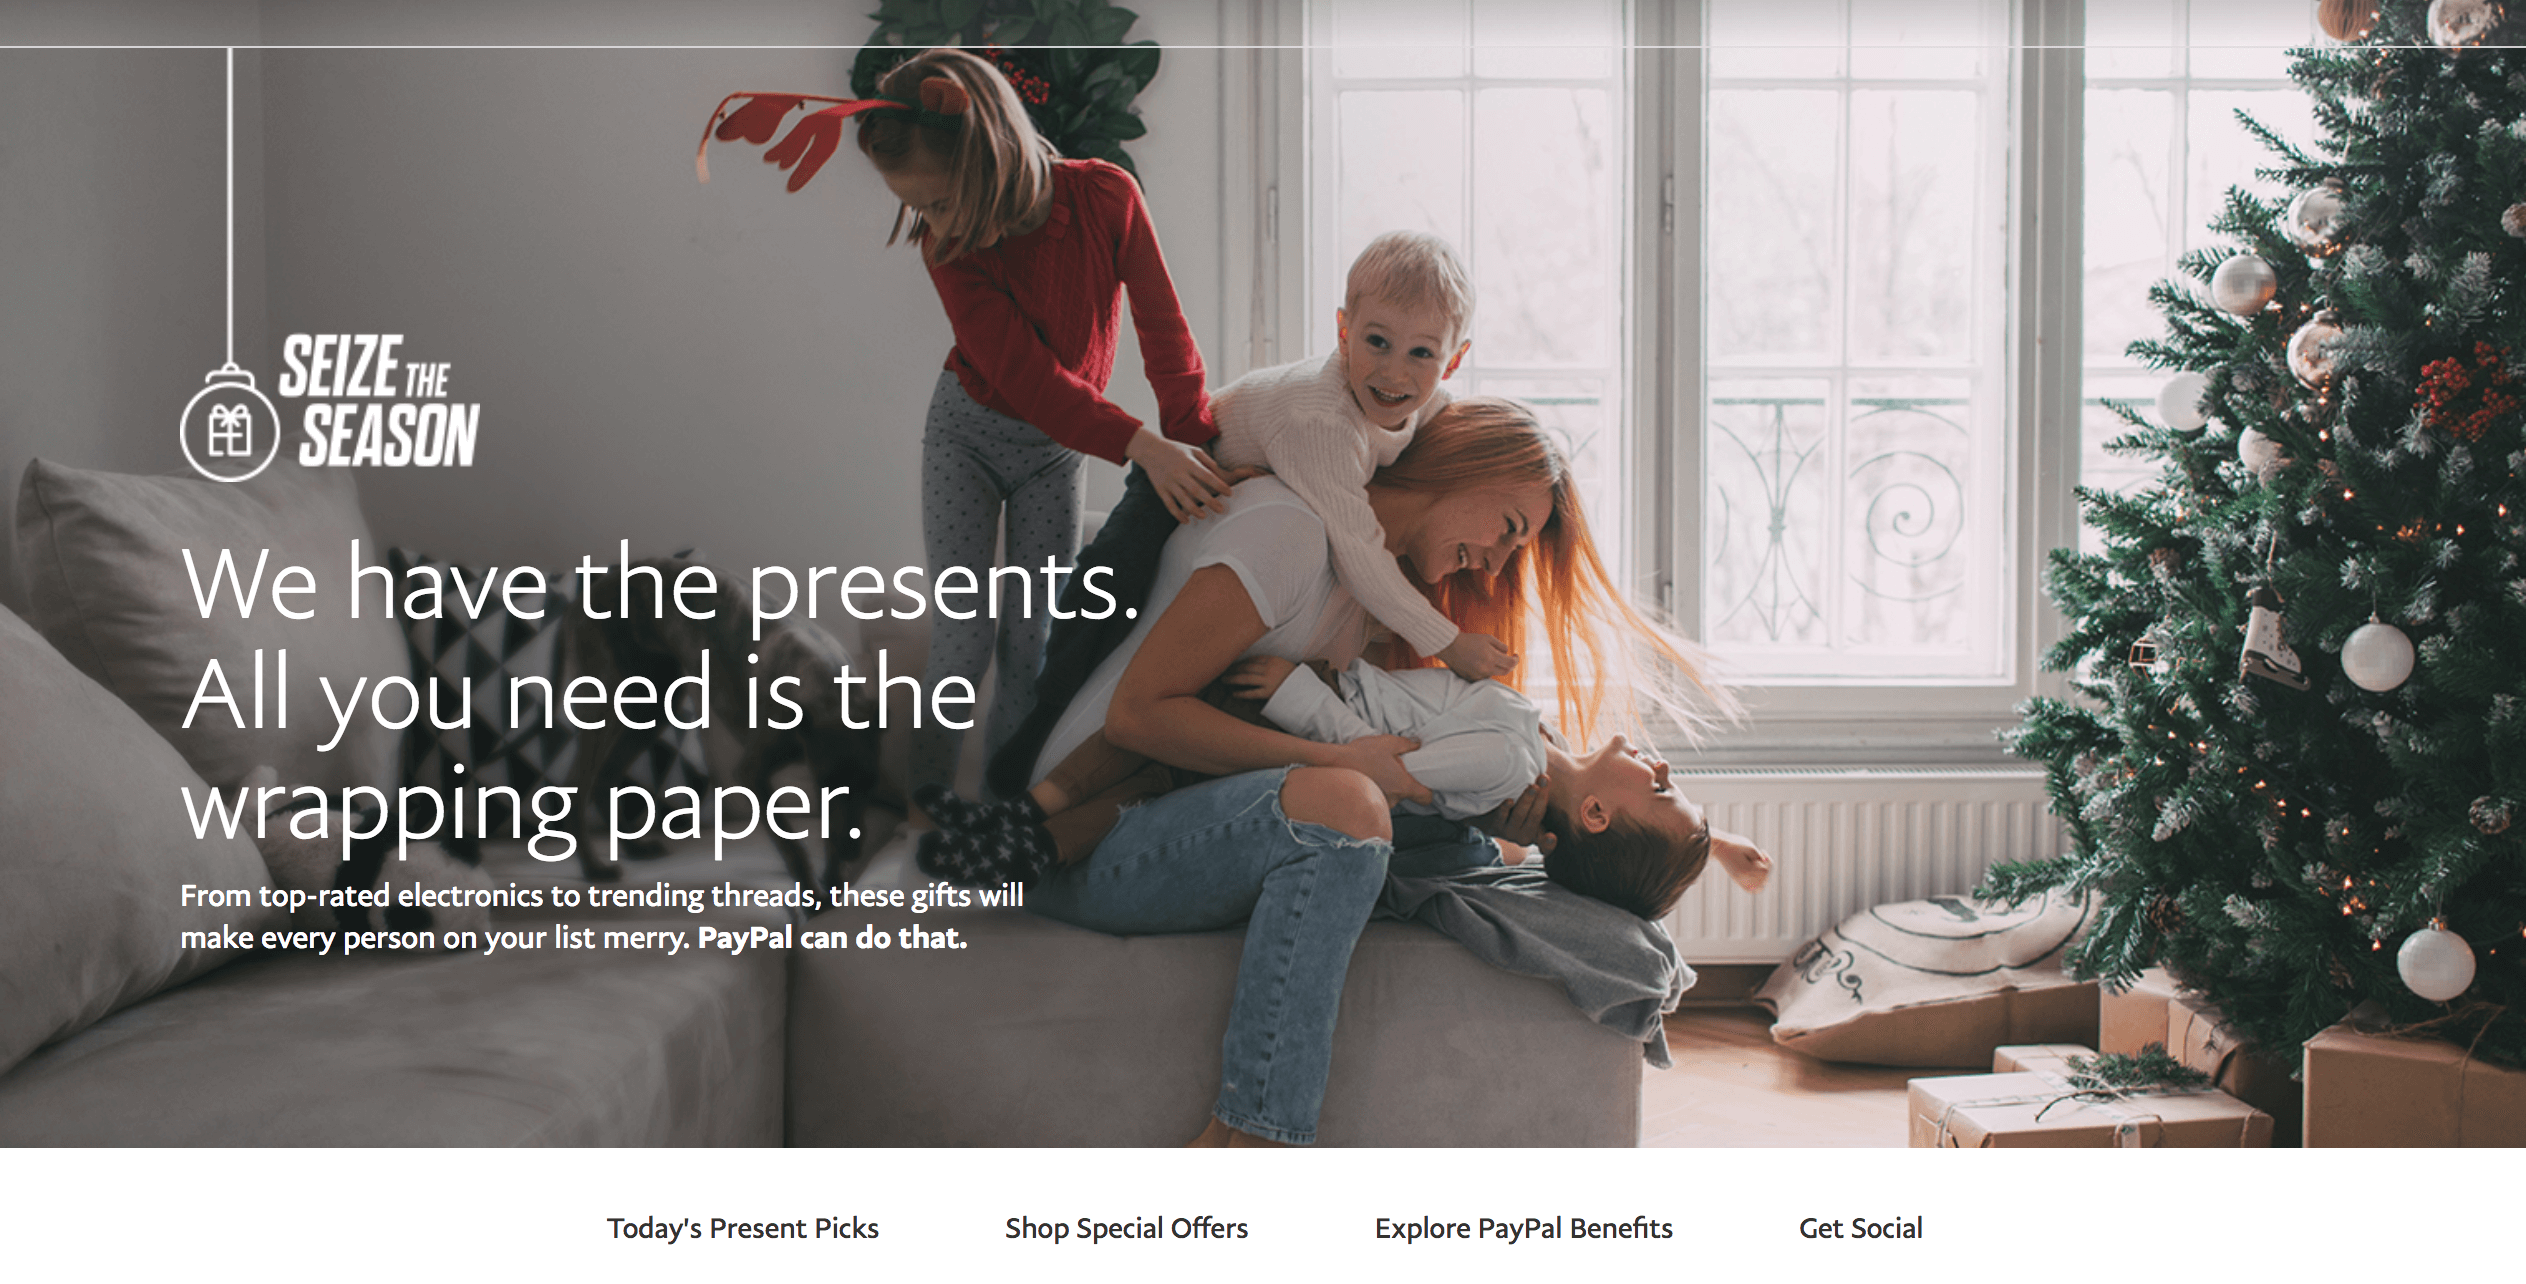 Breaking Through the Holiday Clutter with Email Campaigns